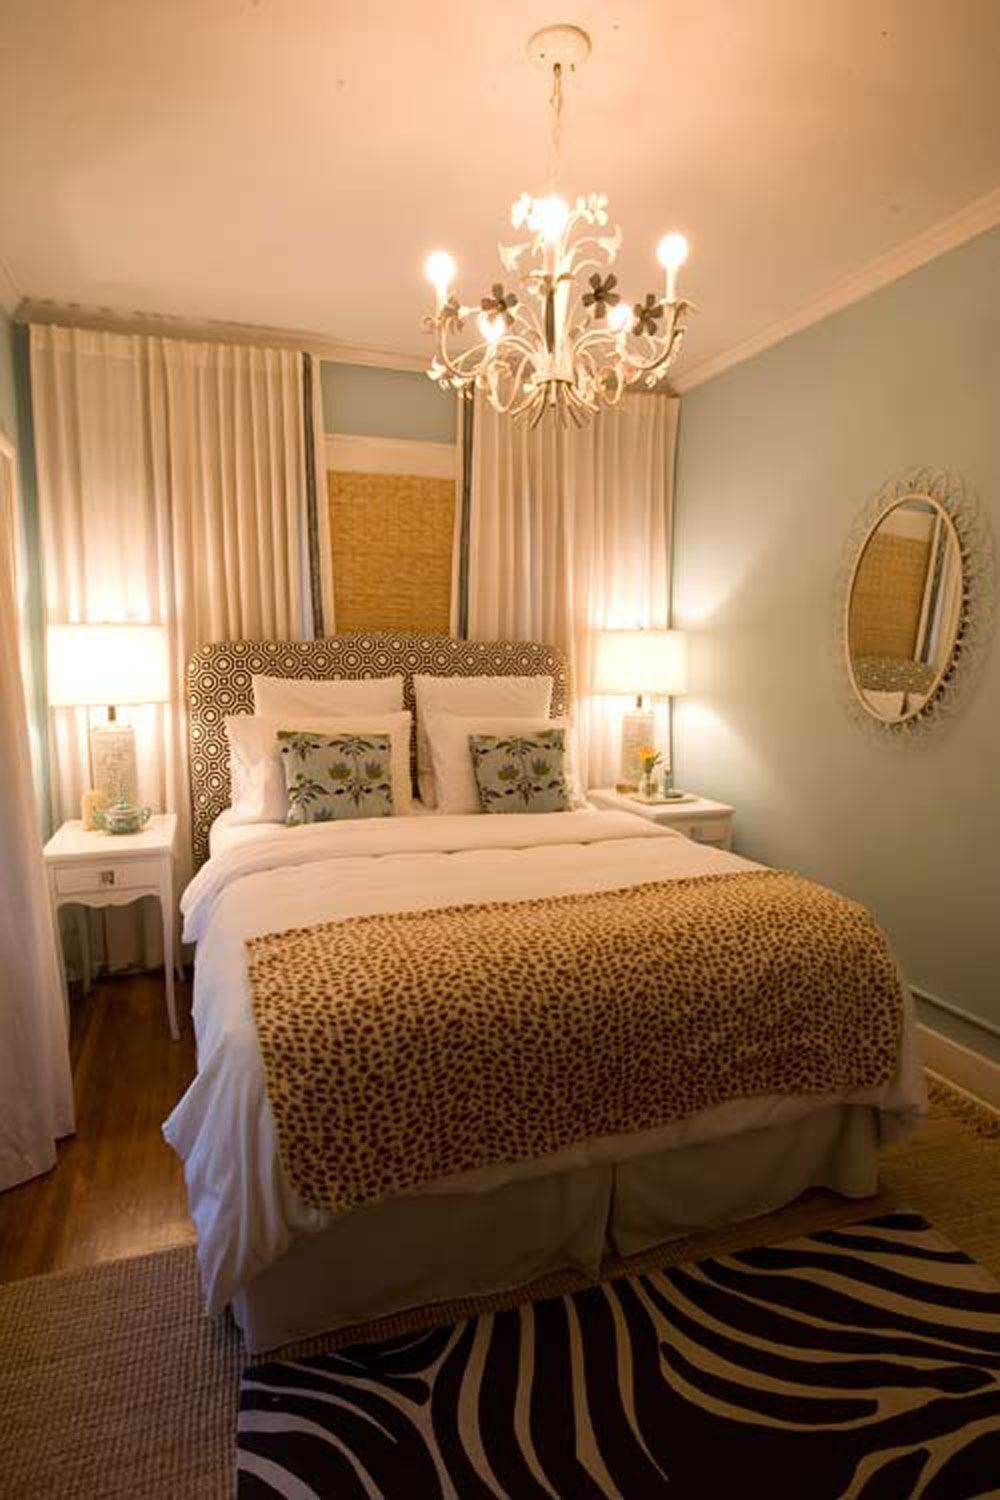 Best Design Tips For Decorating A Small Bedroom On A Budget 640 x 480